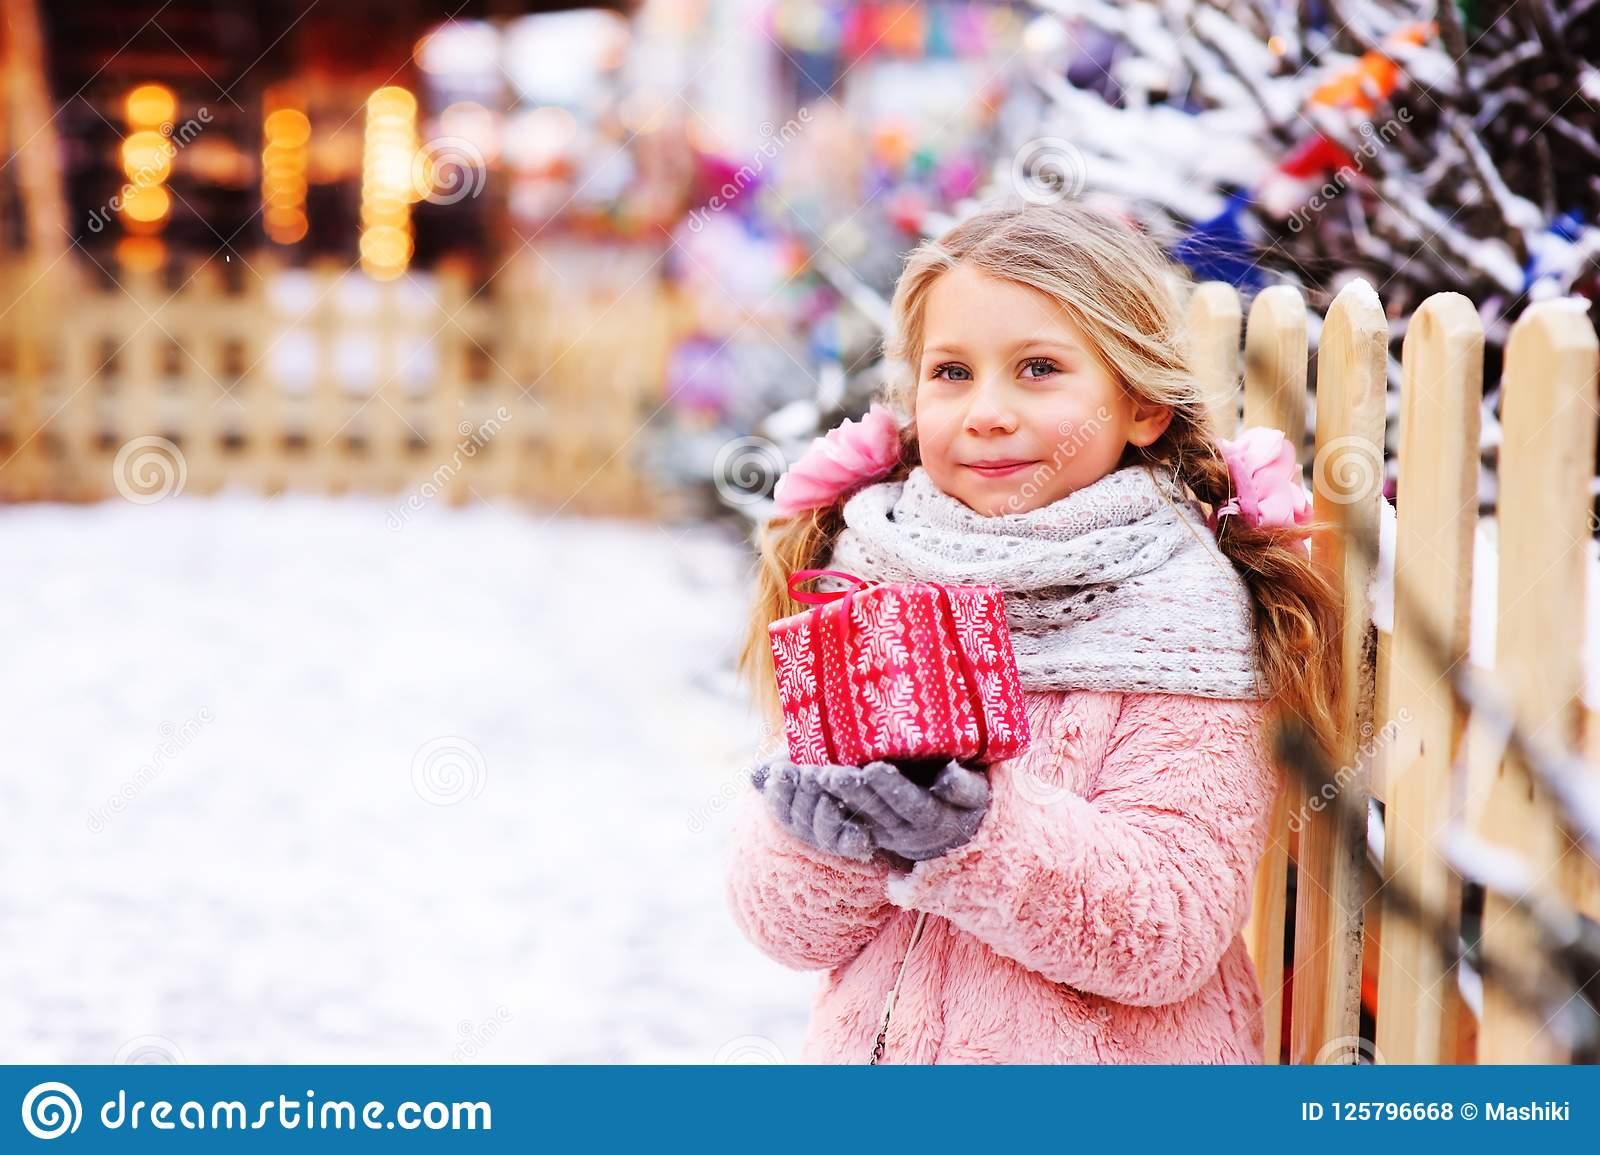 happy child girl holding christmas gift outdoor on the walk in snowy winter city